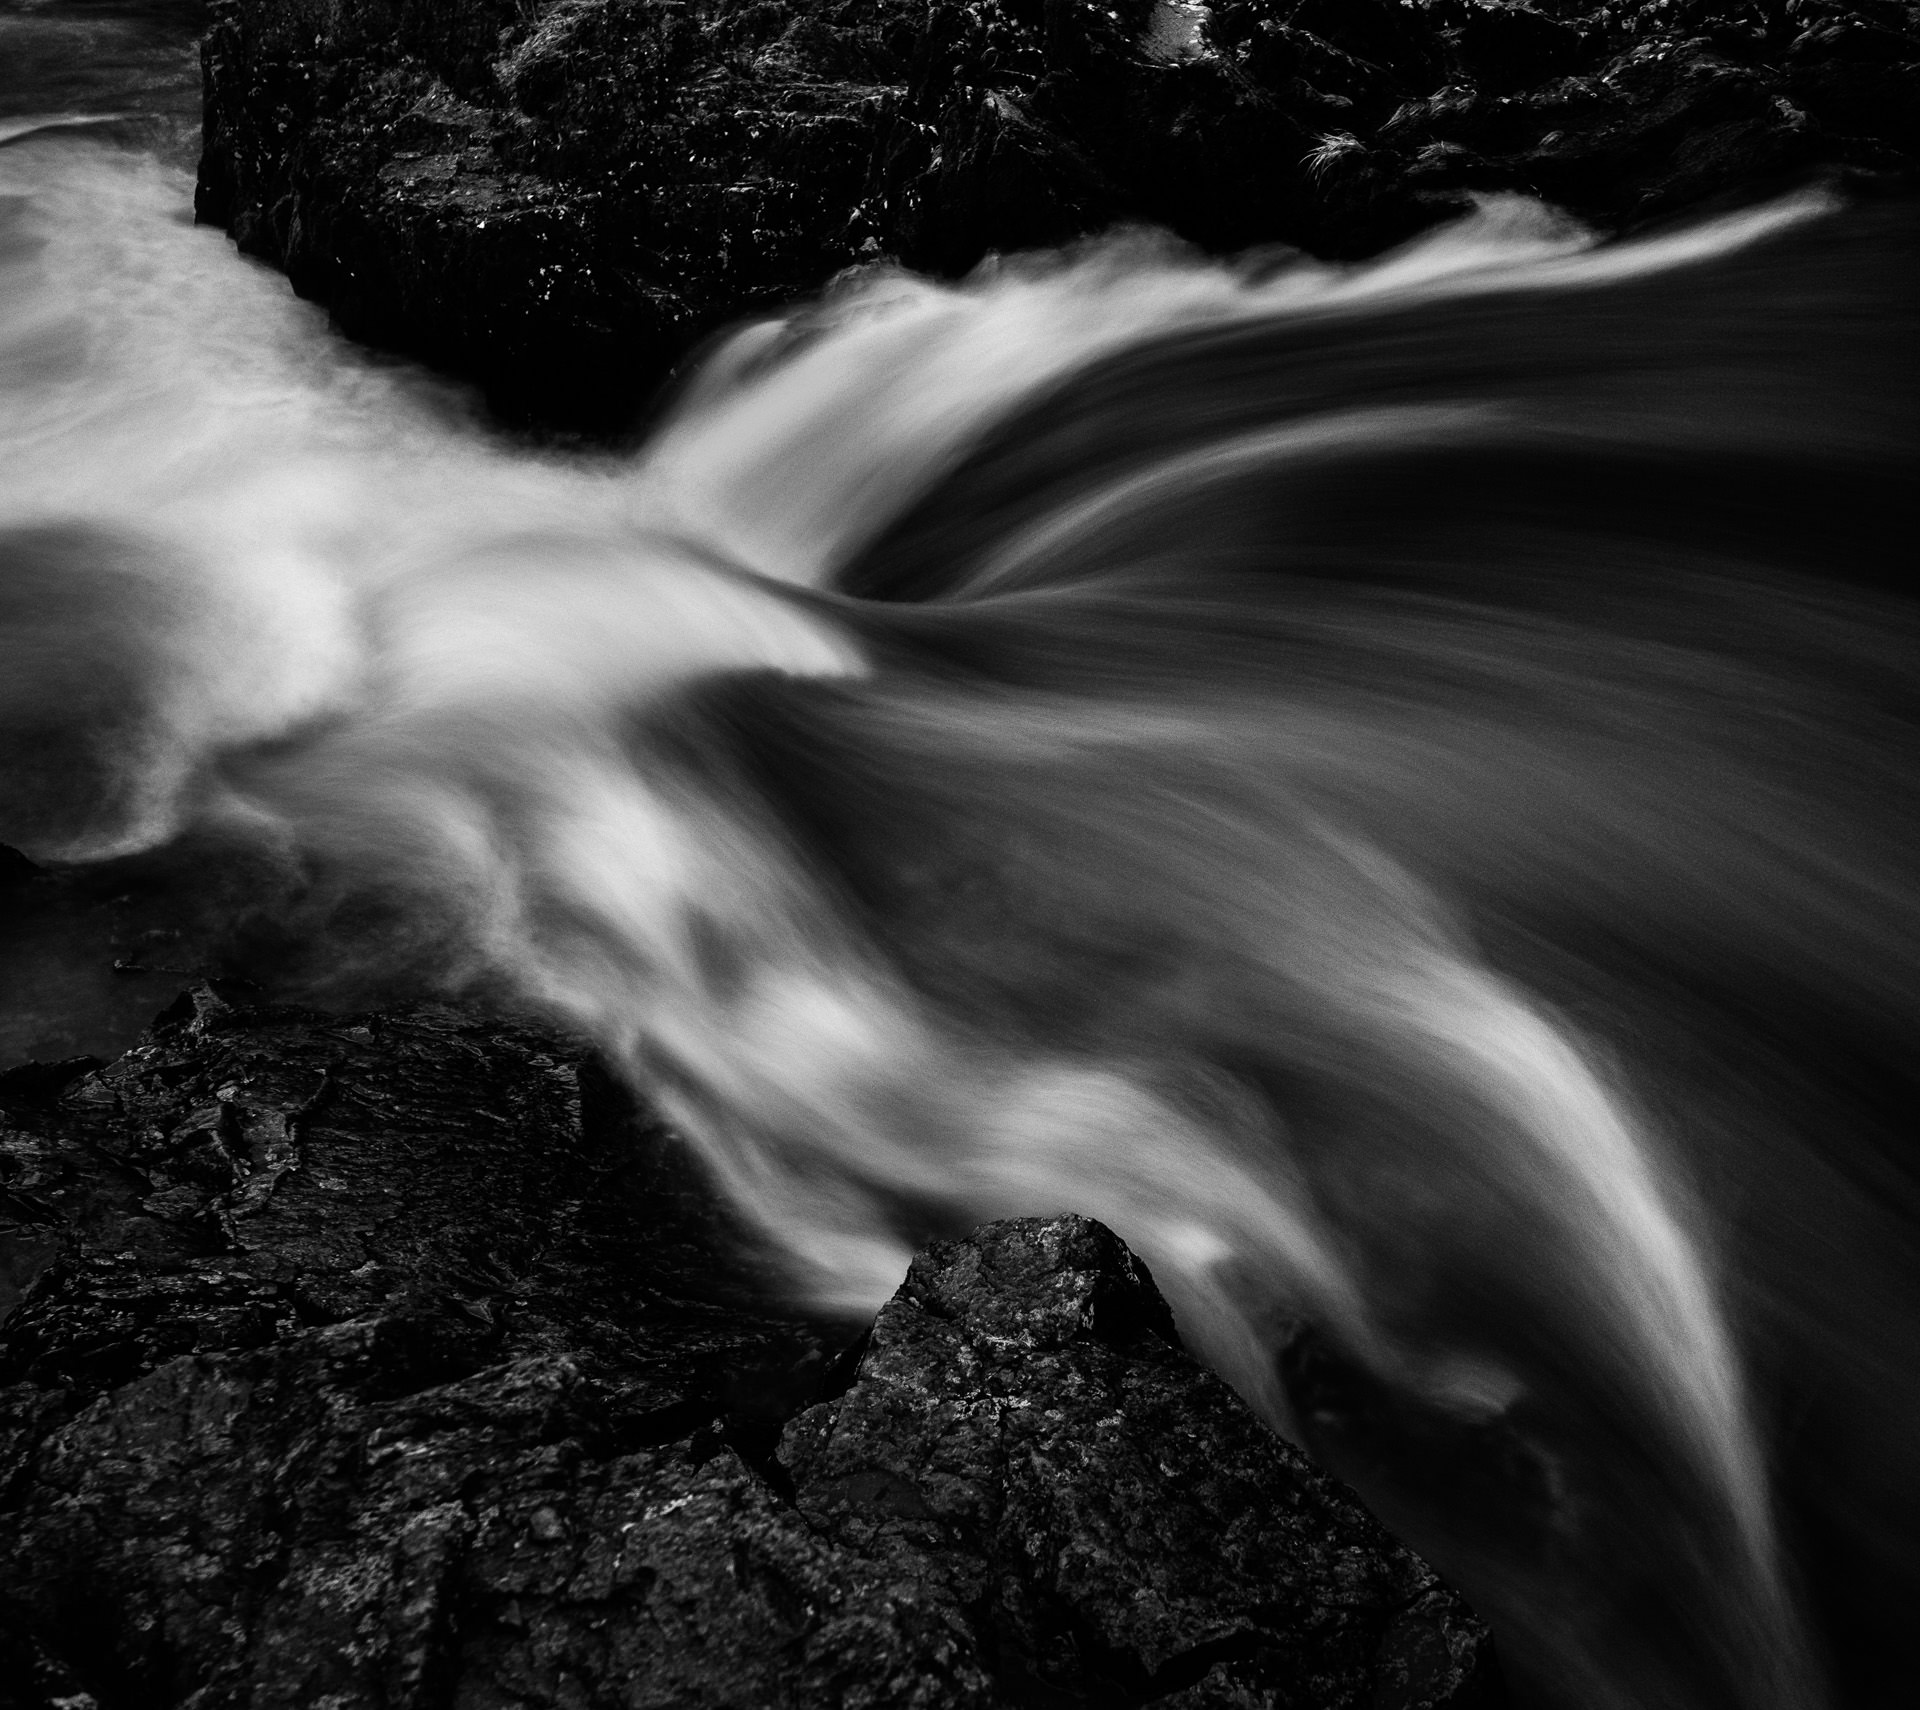 …this time I concentrated on photographing water at different shutter speeds.